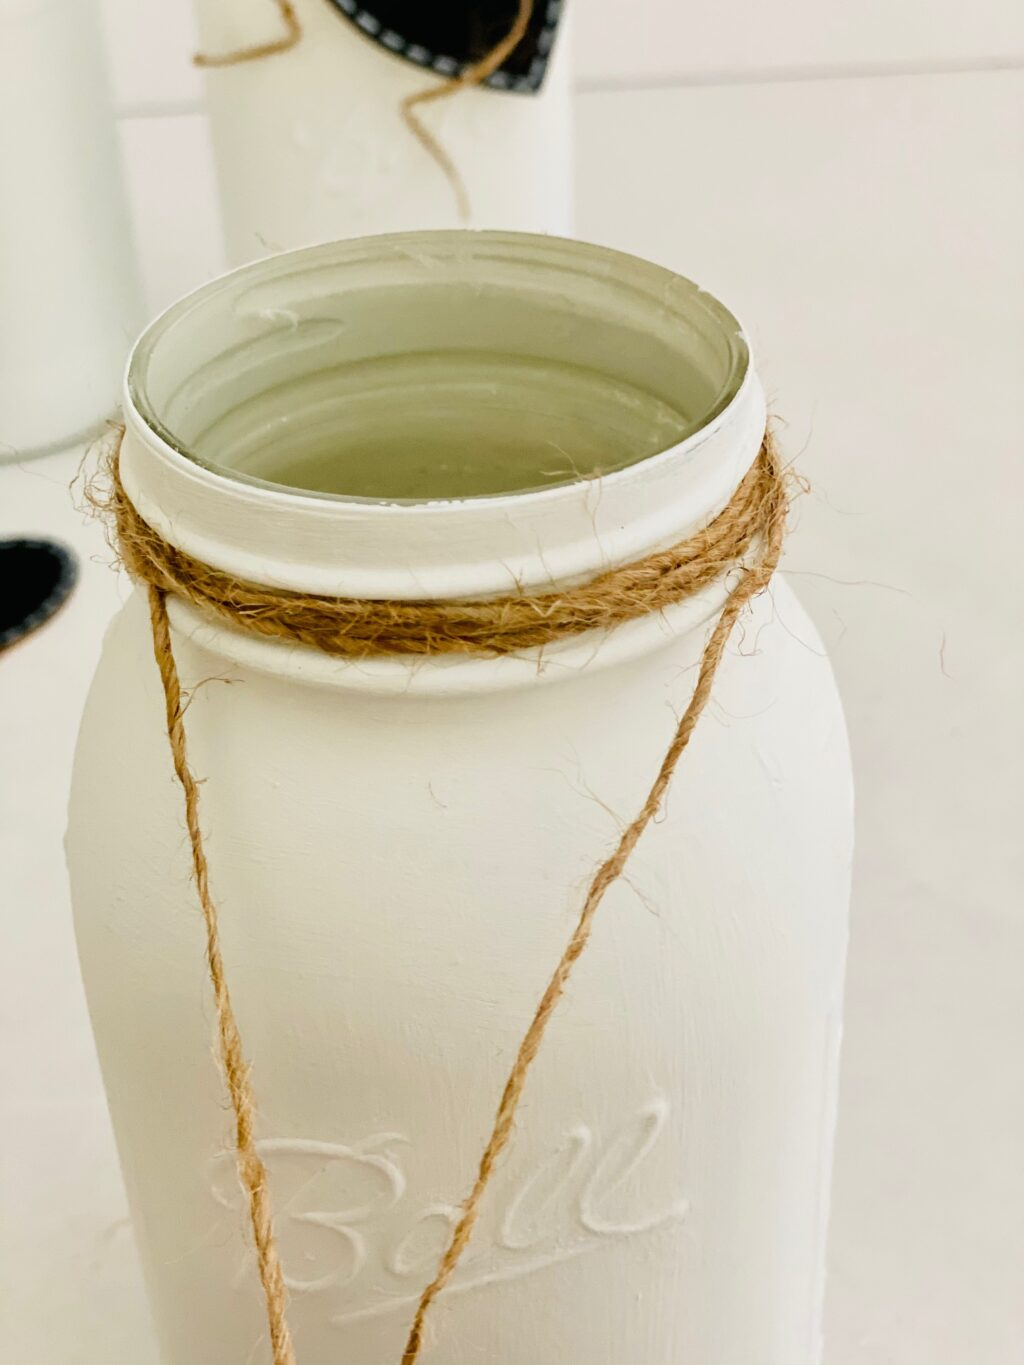 twine wrapped around a mason jar